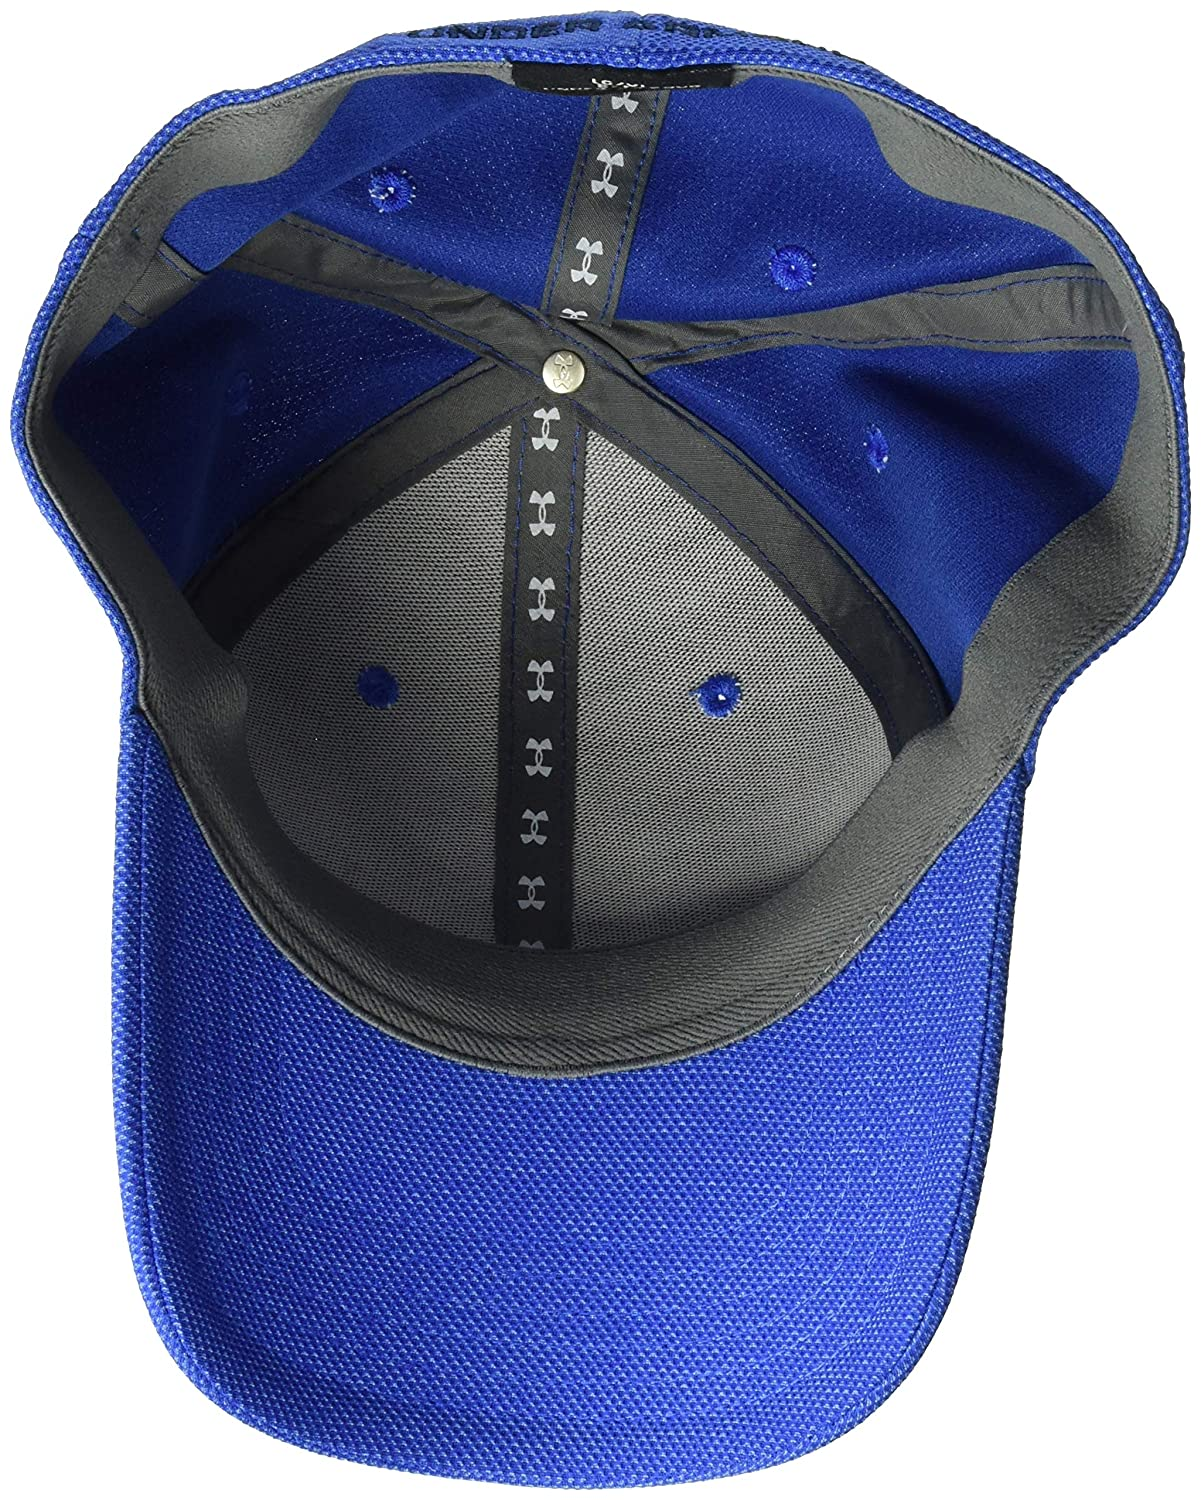 a6621ceb496 Under Armour Men s Heather Blitzing 3.0 Cap  Amazon.co.uk  Sports   Outdoors